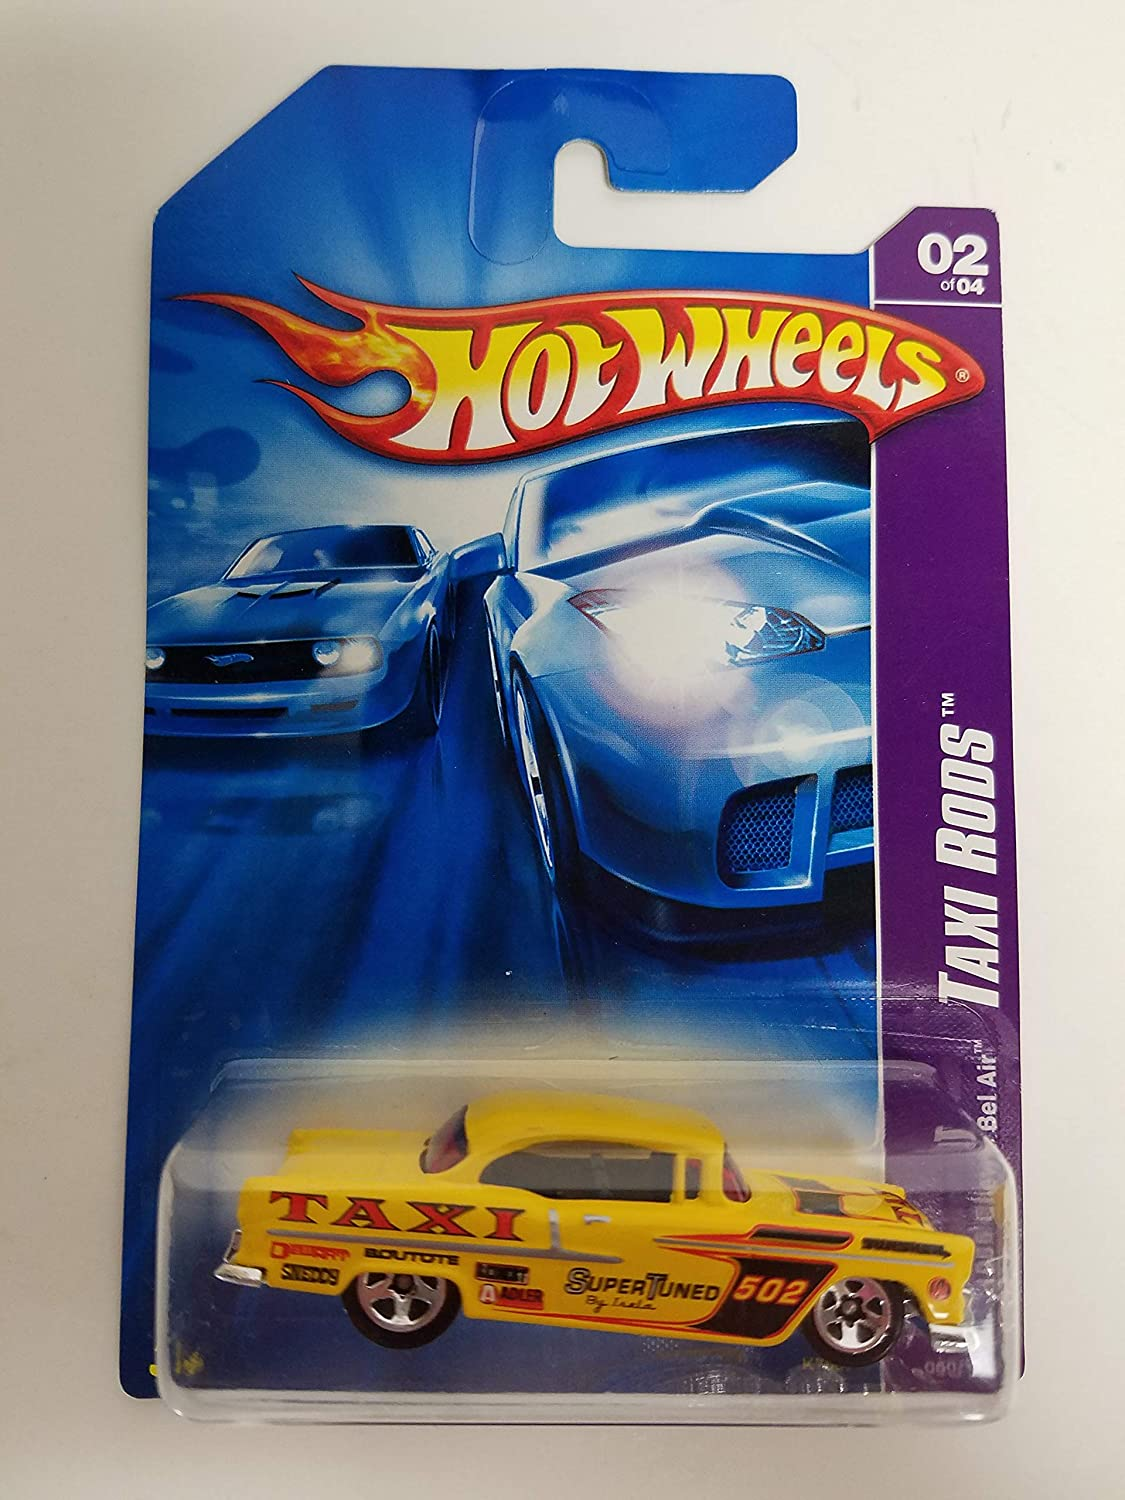 1955 Chevy Bel Air 2007 Taxi Rods 2 of 4 Hot Wheels diecast car No. 050